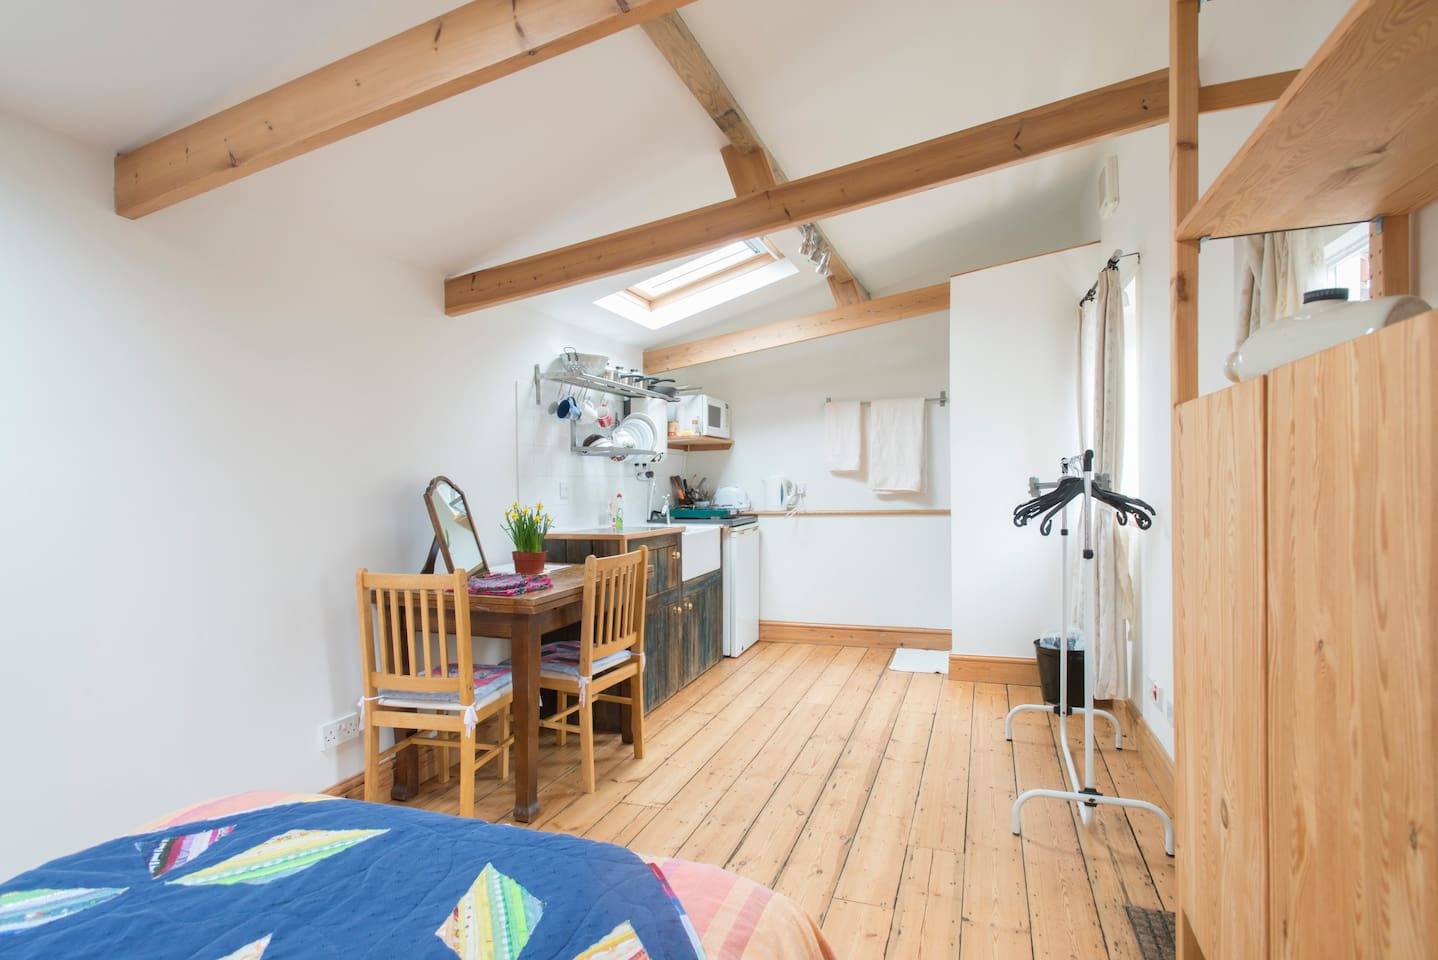 NB Airbnb photos use wide angle lenses! Compact but light and airy kitchen, dining and sleeping area with shower in far right corner